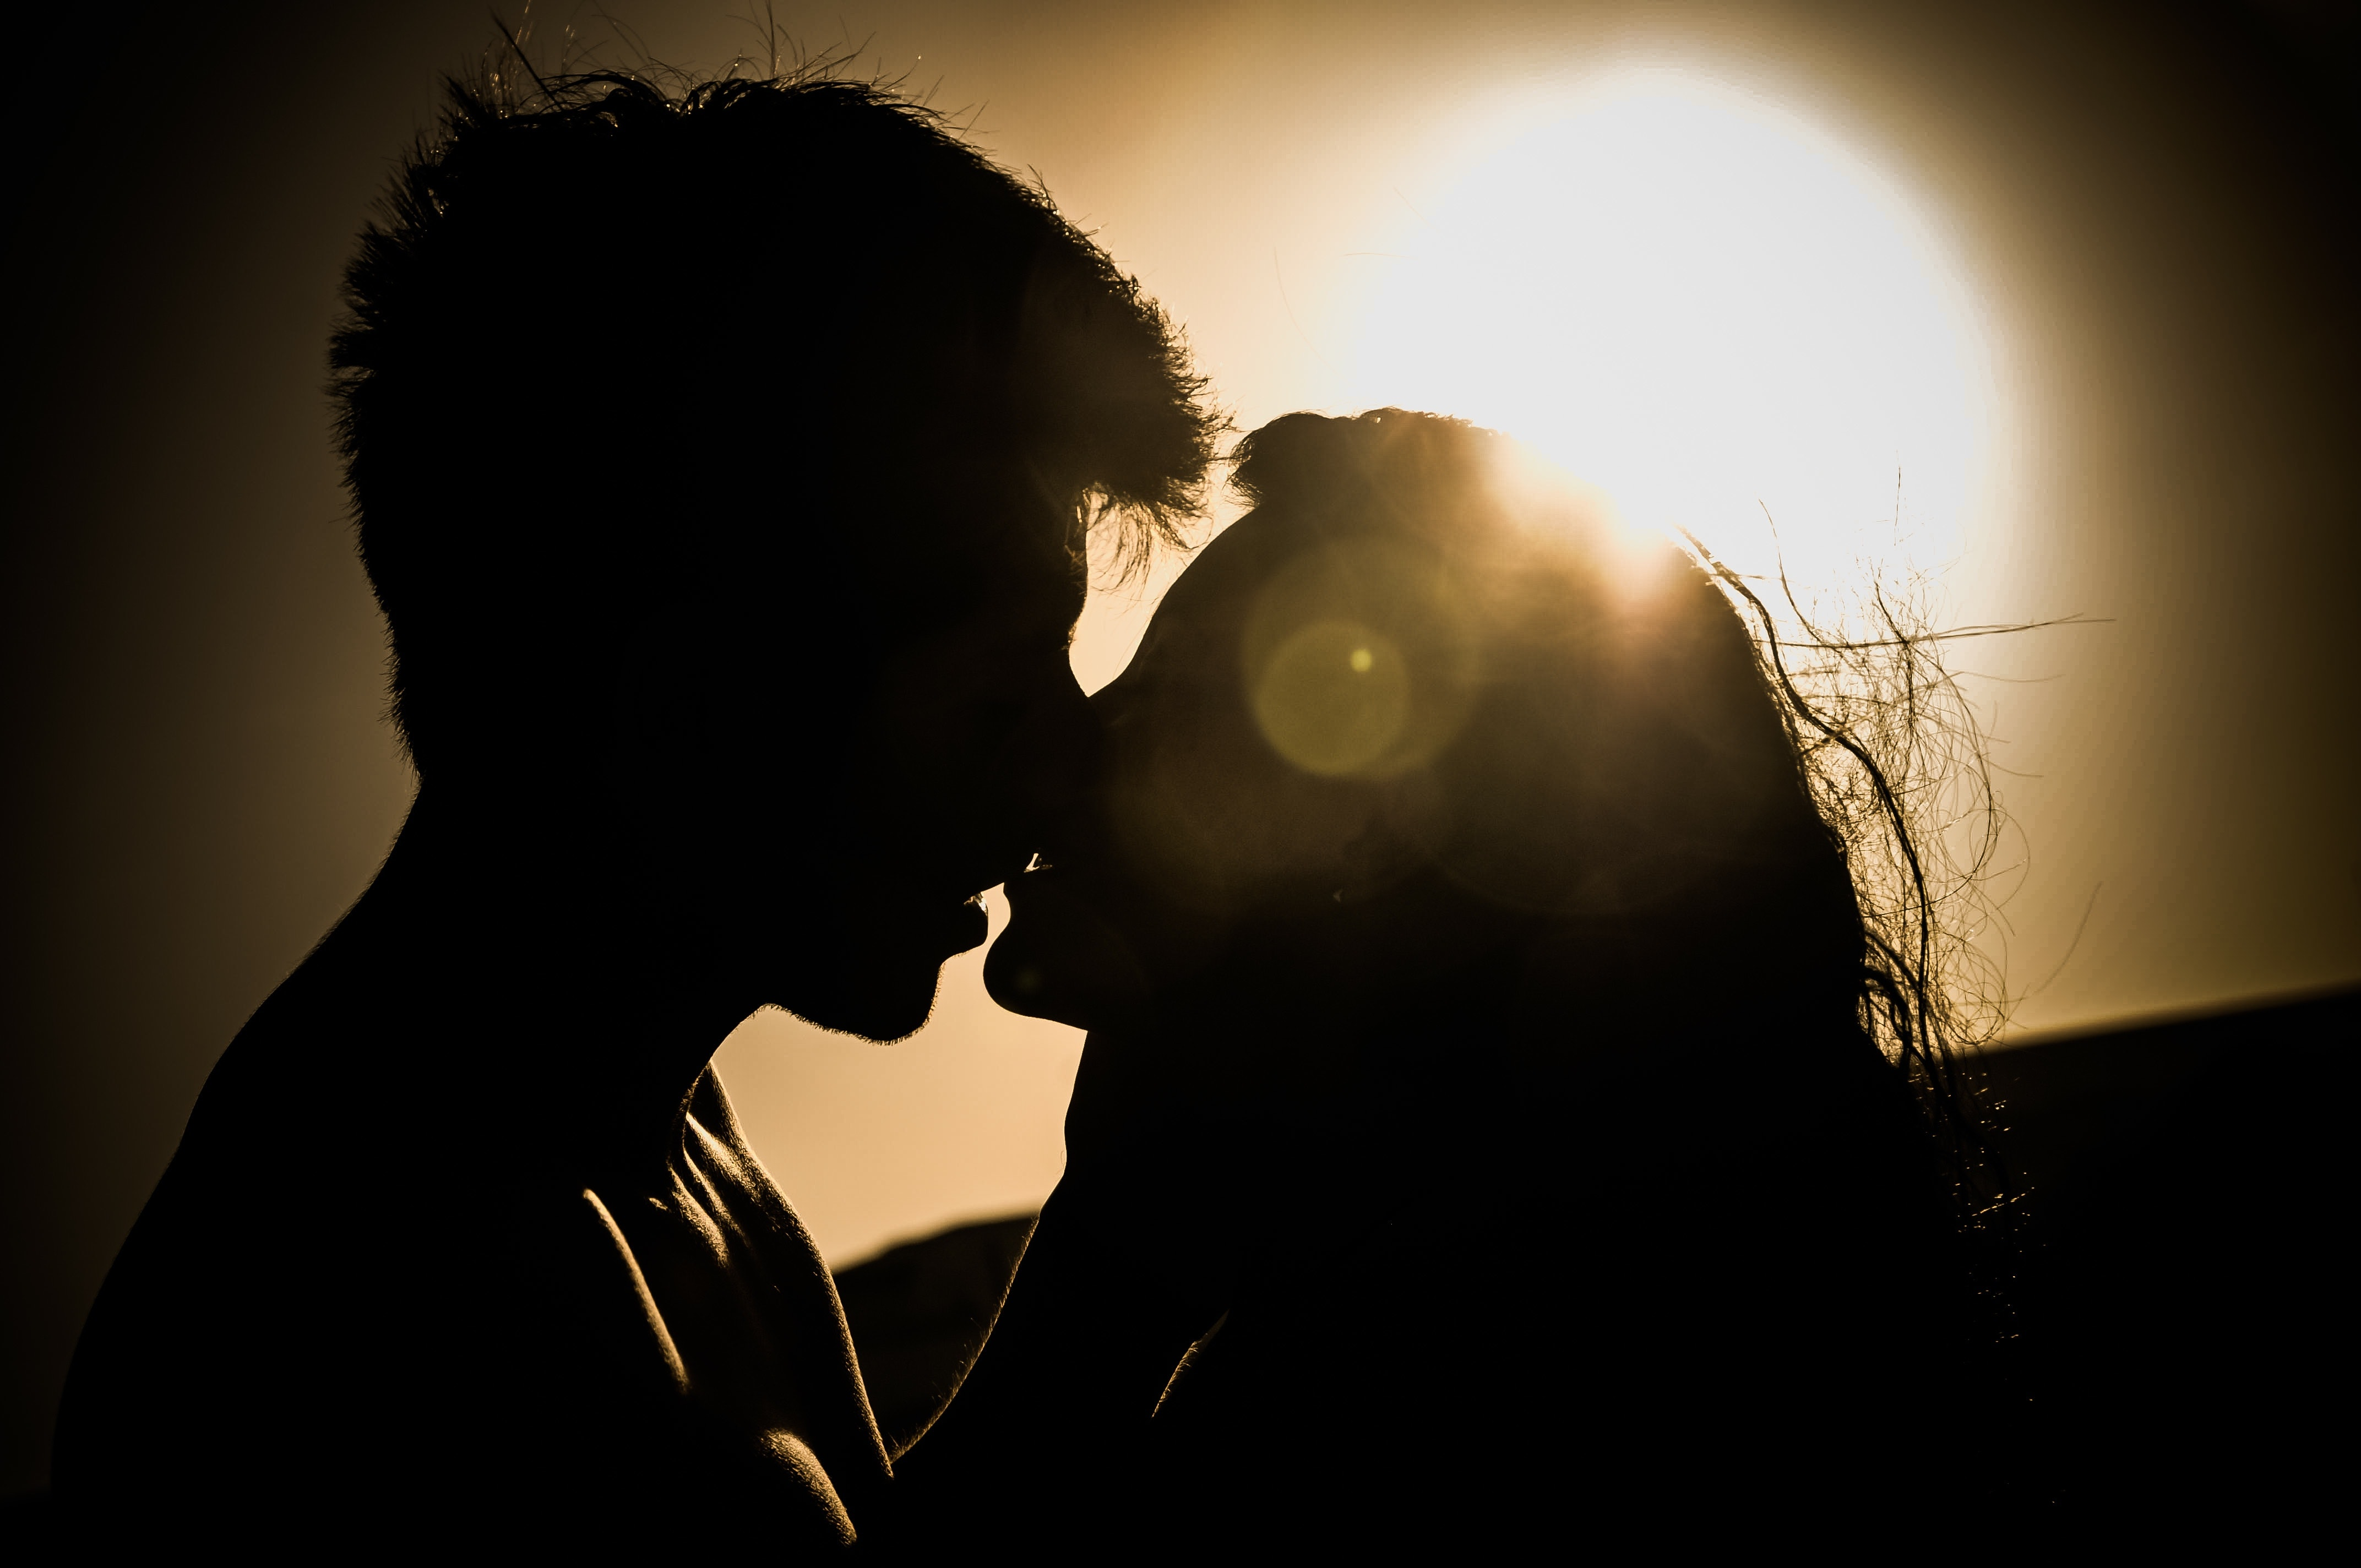 Hookup someone with no relationship experience